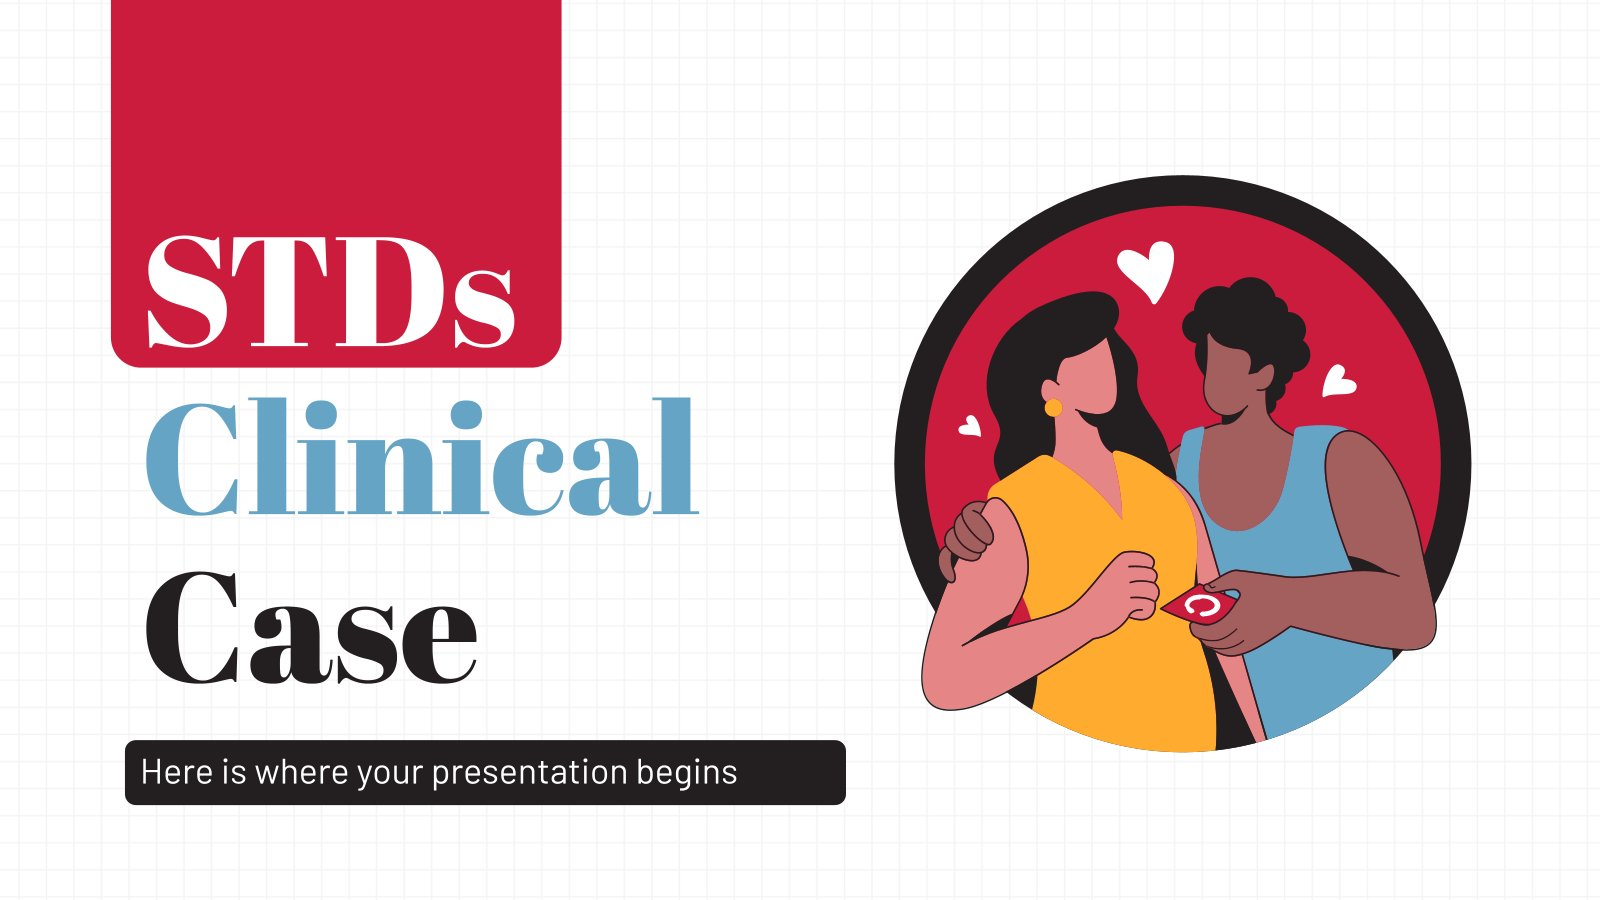 STDs Clinical Case presentation template